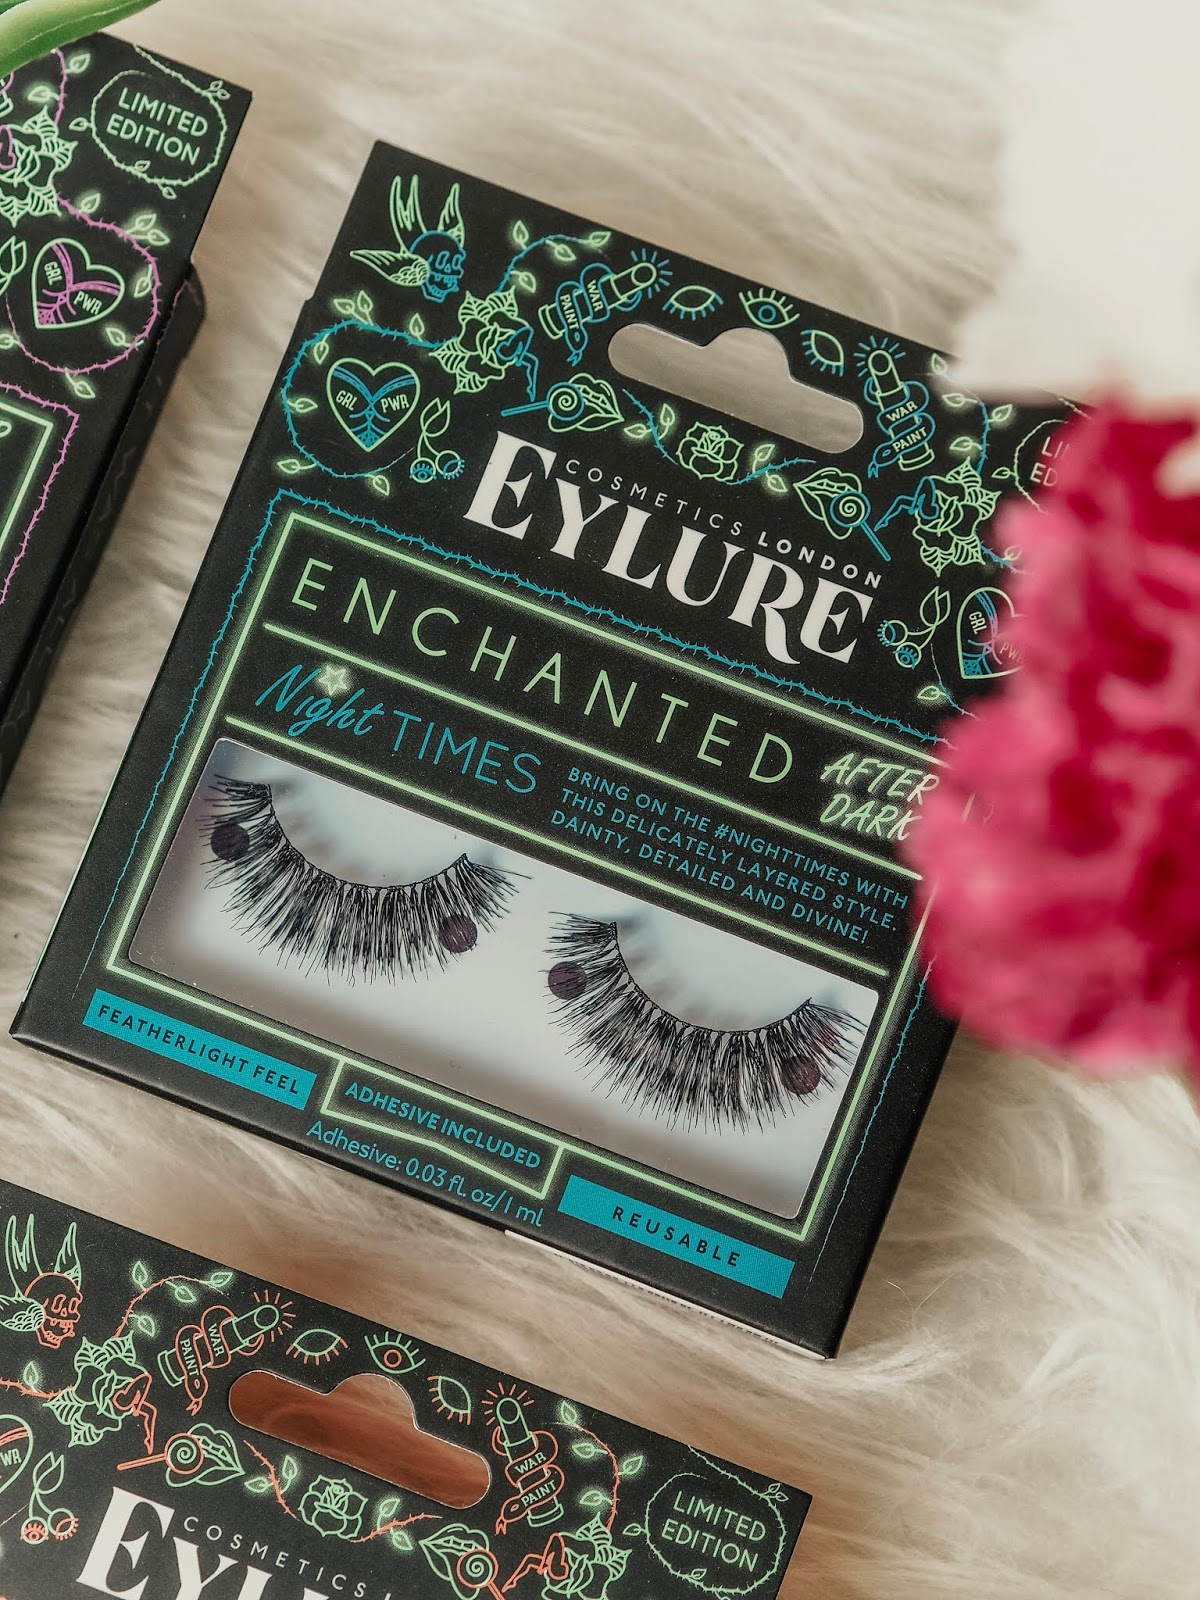 686e793c2af If you want to make a big impact, these are the lashes for you. They're  long, wispy, and flared to really make those eyes pop!